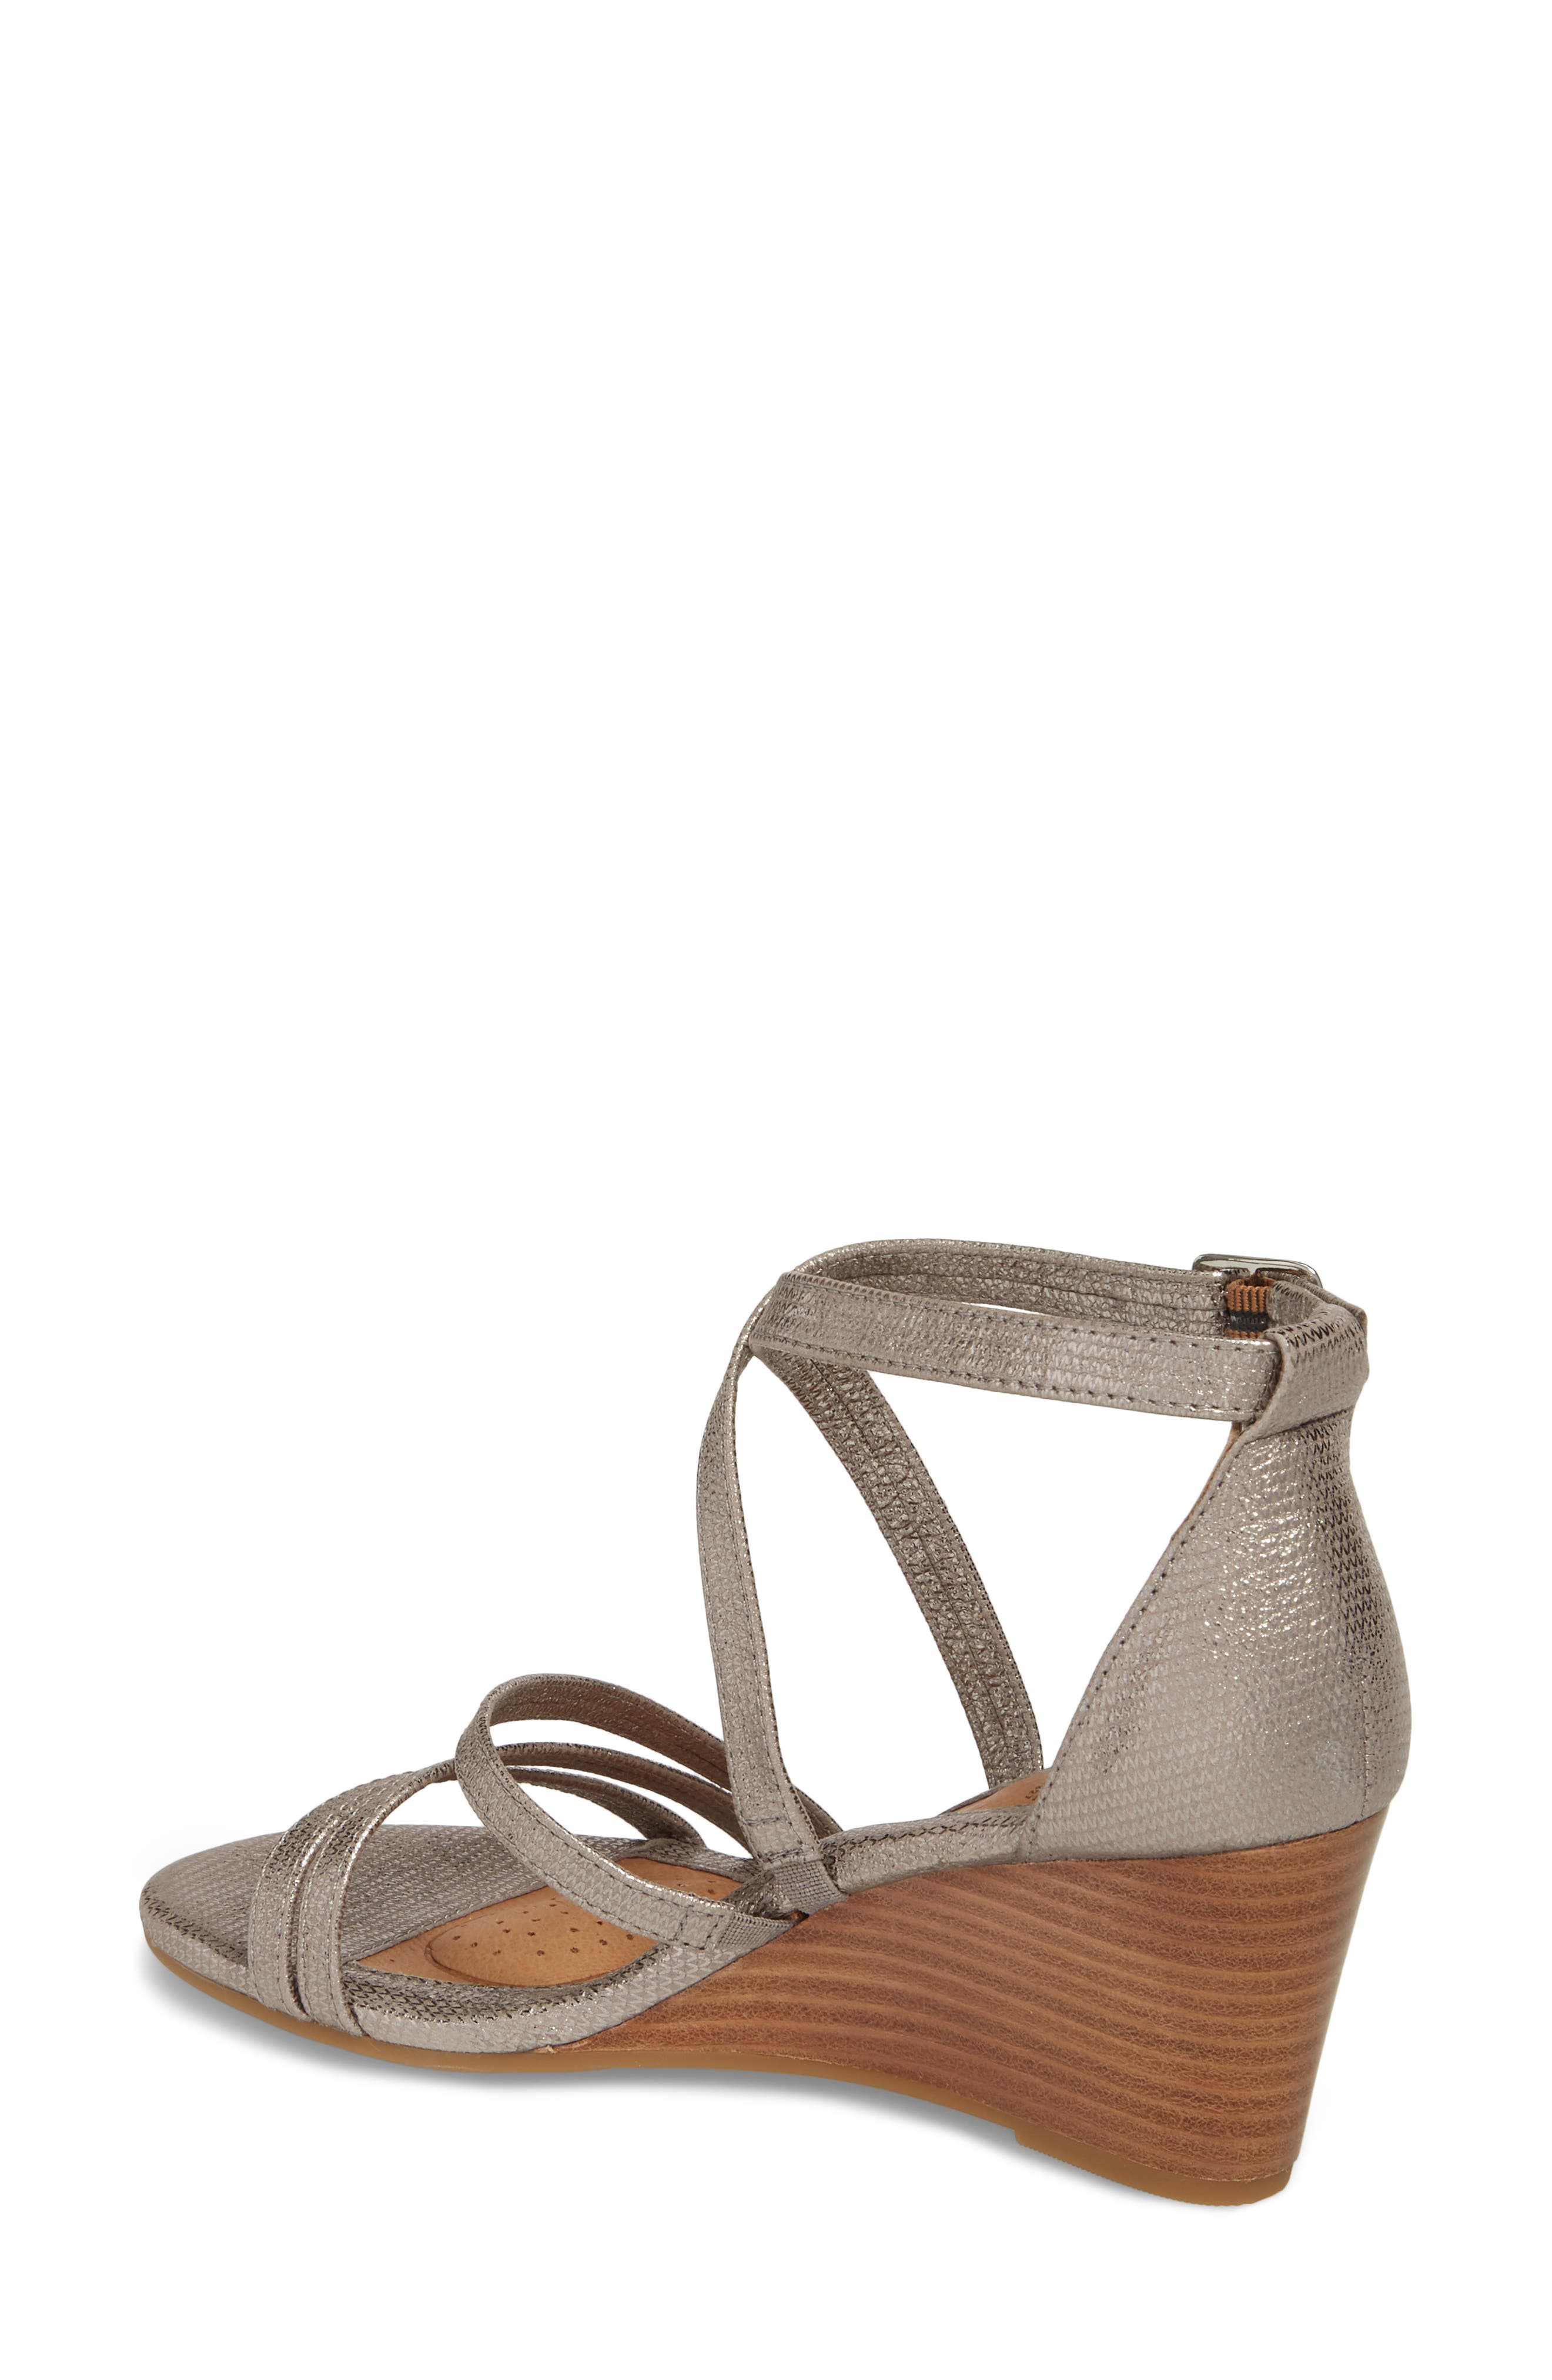 Mecina Wedge Sandal,                             Alternate thumbnail 2, color,                             SILVER METALLIC LEATHER